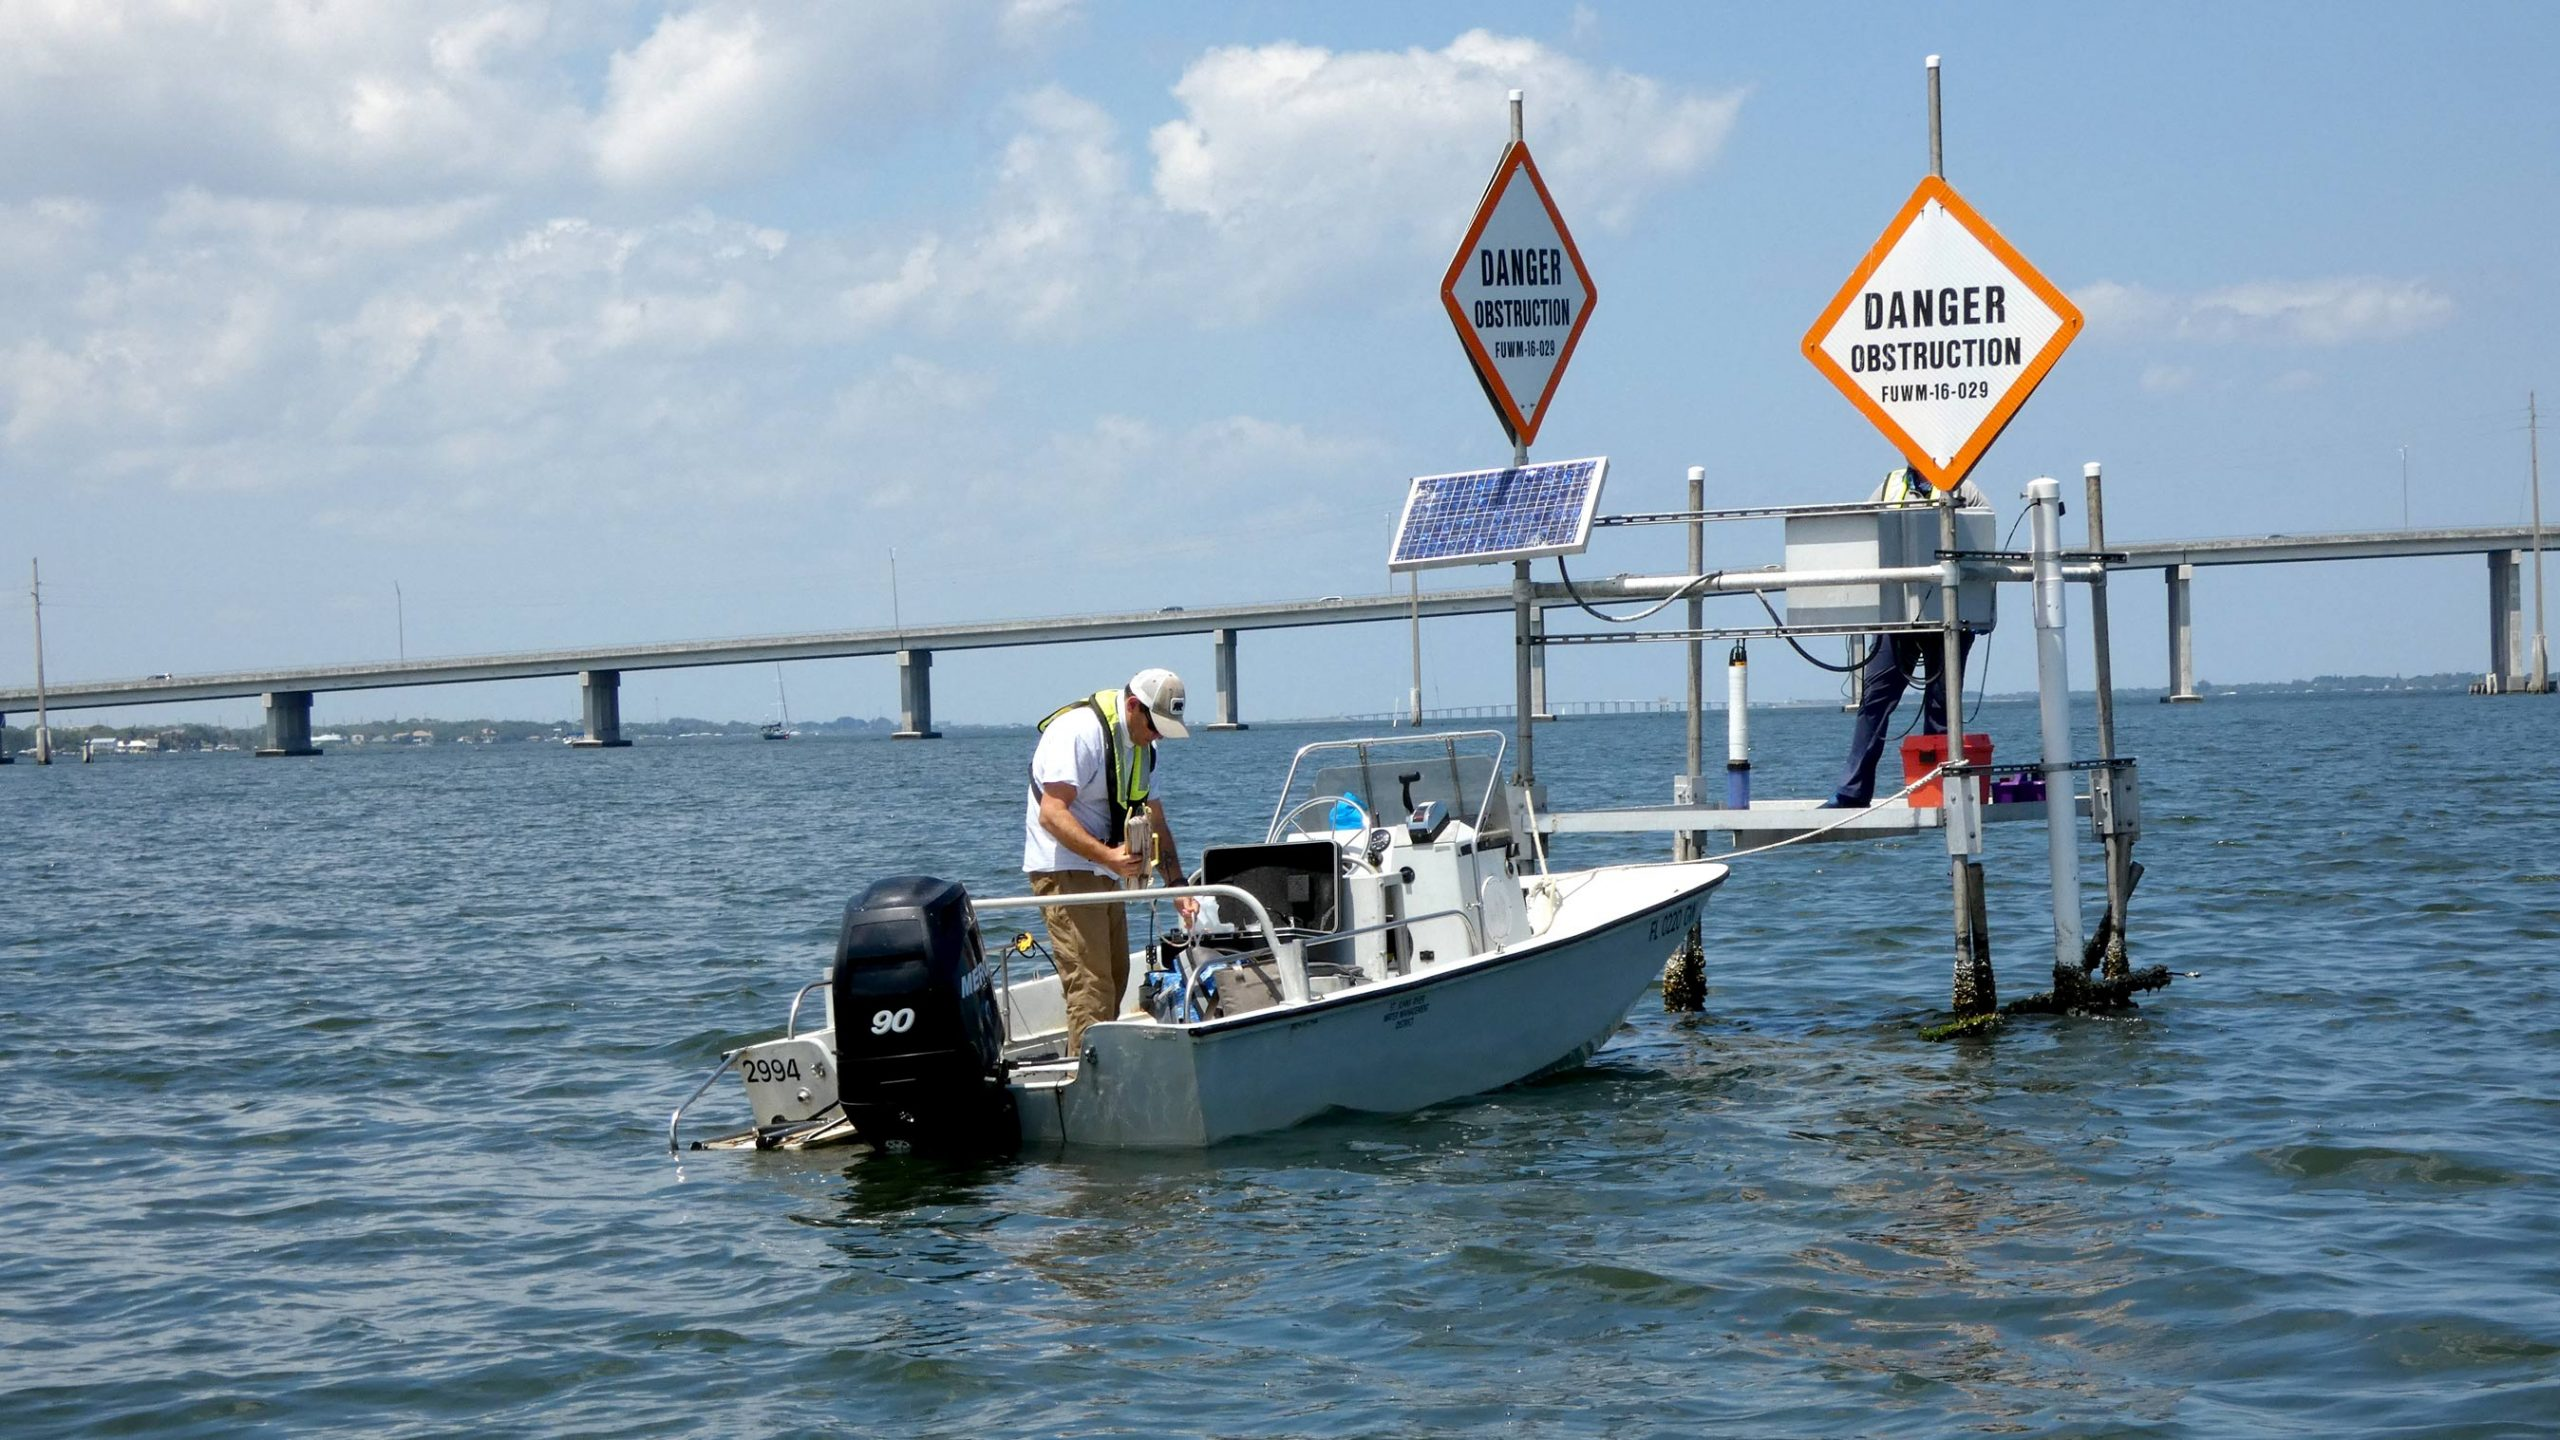 A water quality monitoring site in the Indian River Lagoon